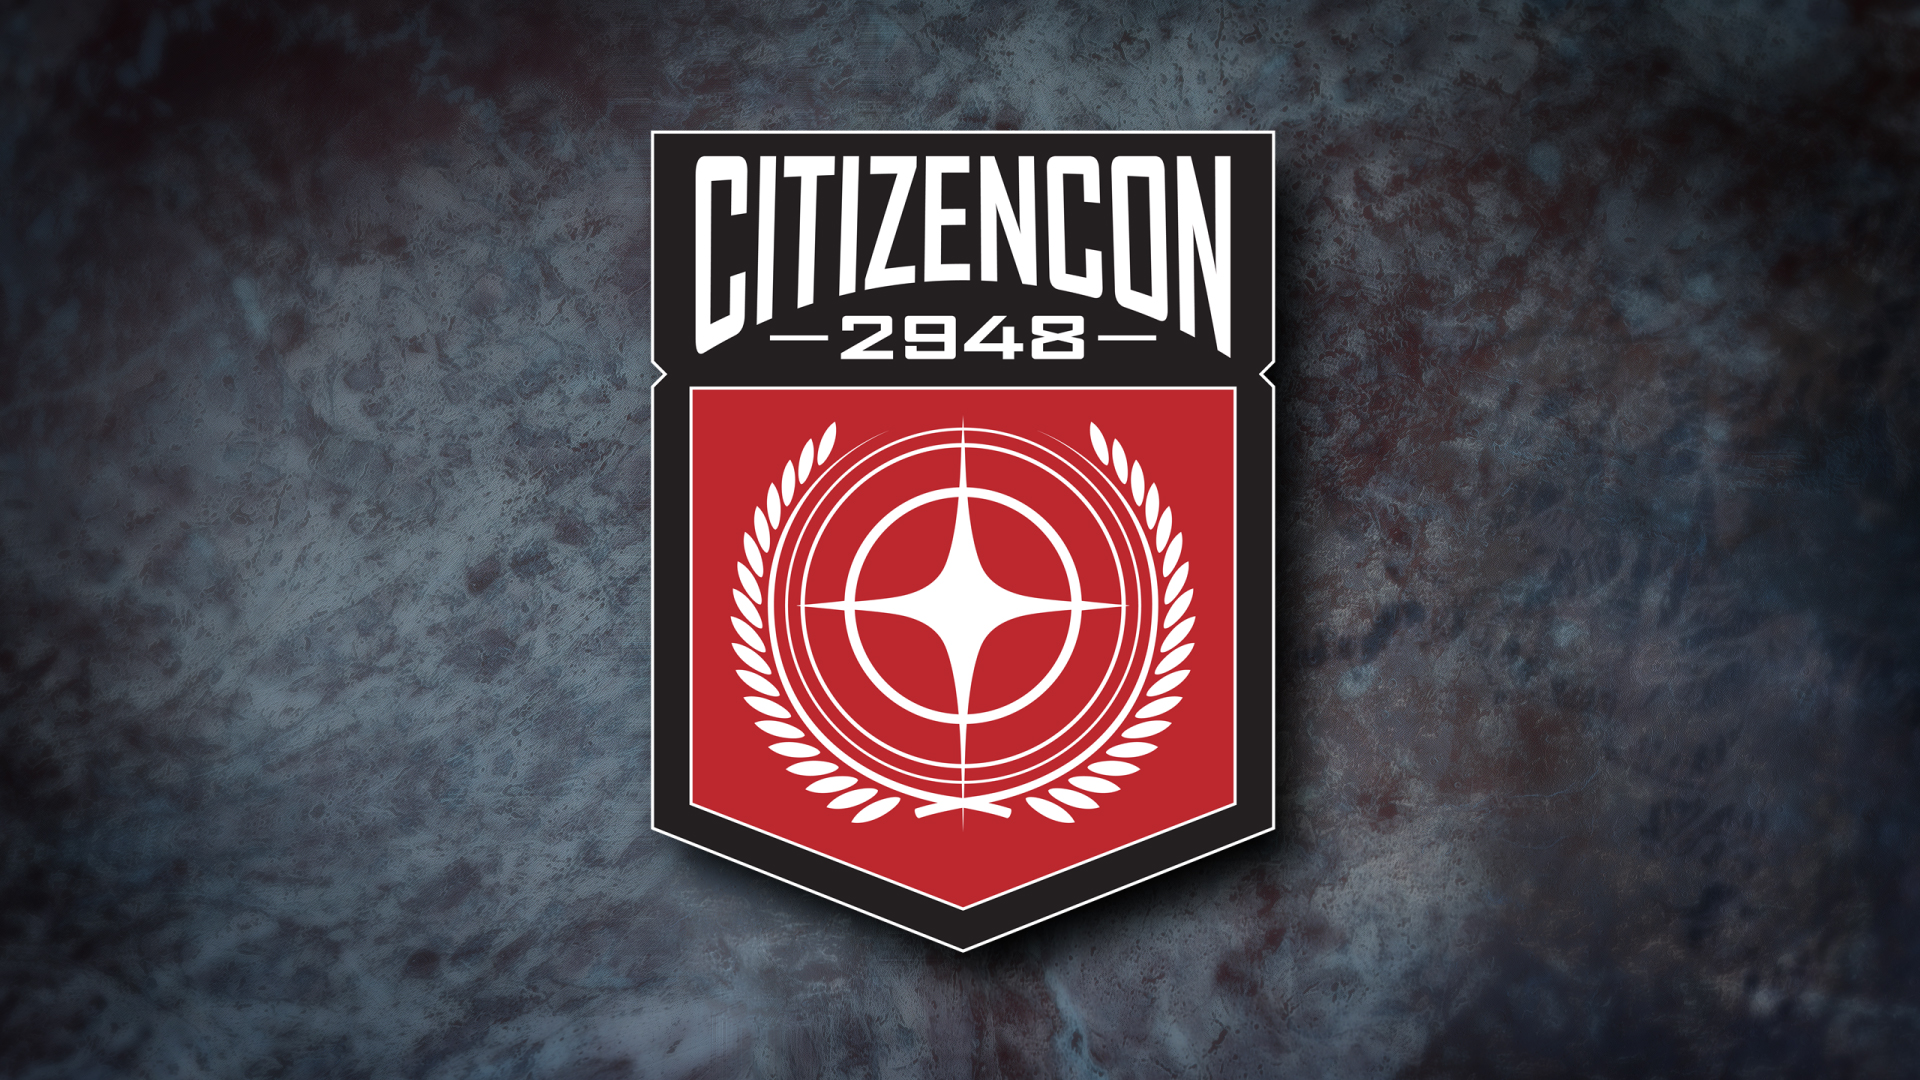 CitizenCon_FI_v1.jpg